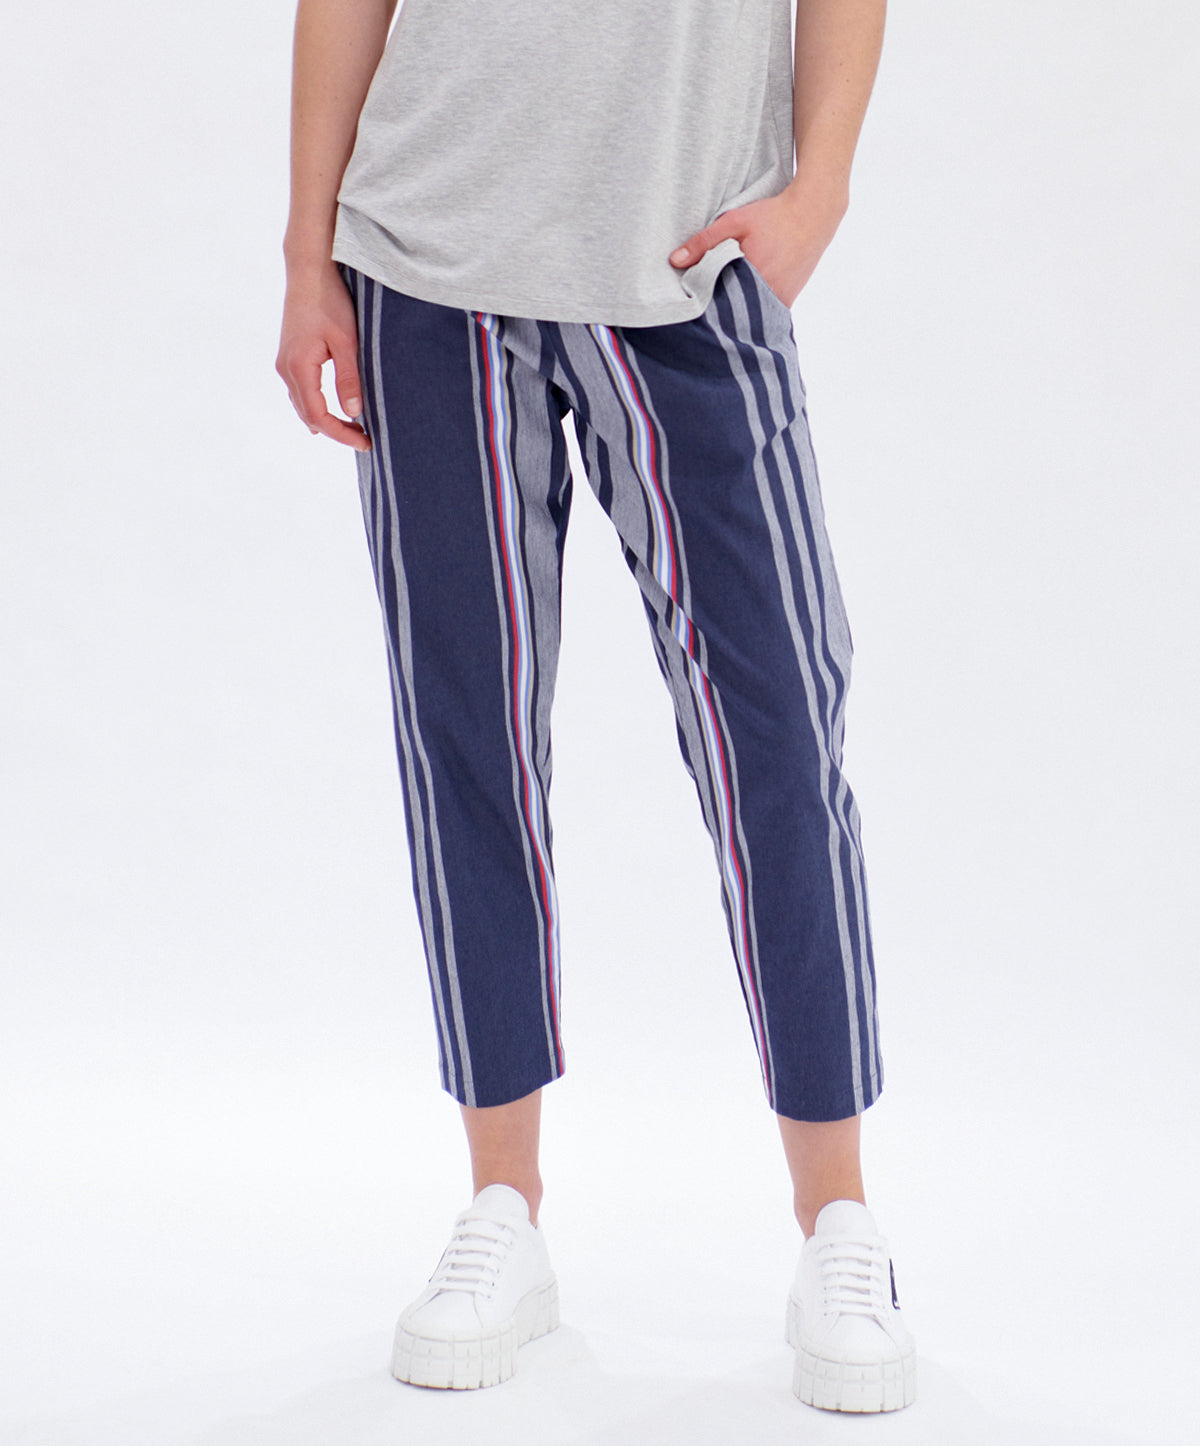 Nomad Pant